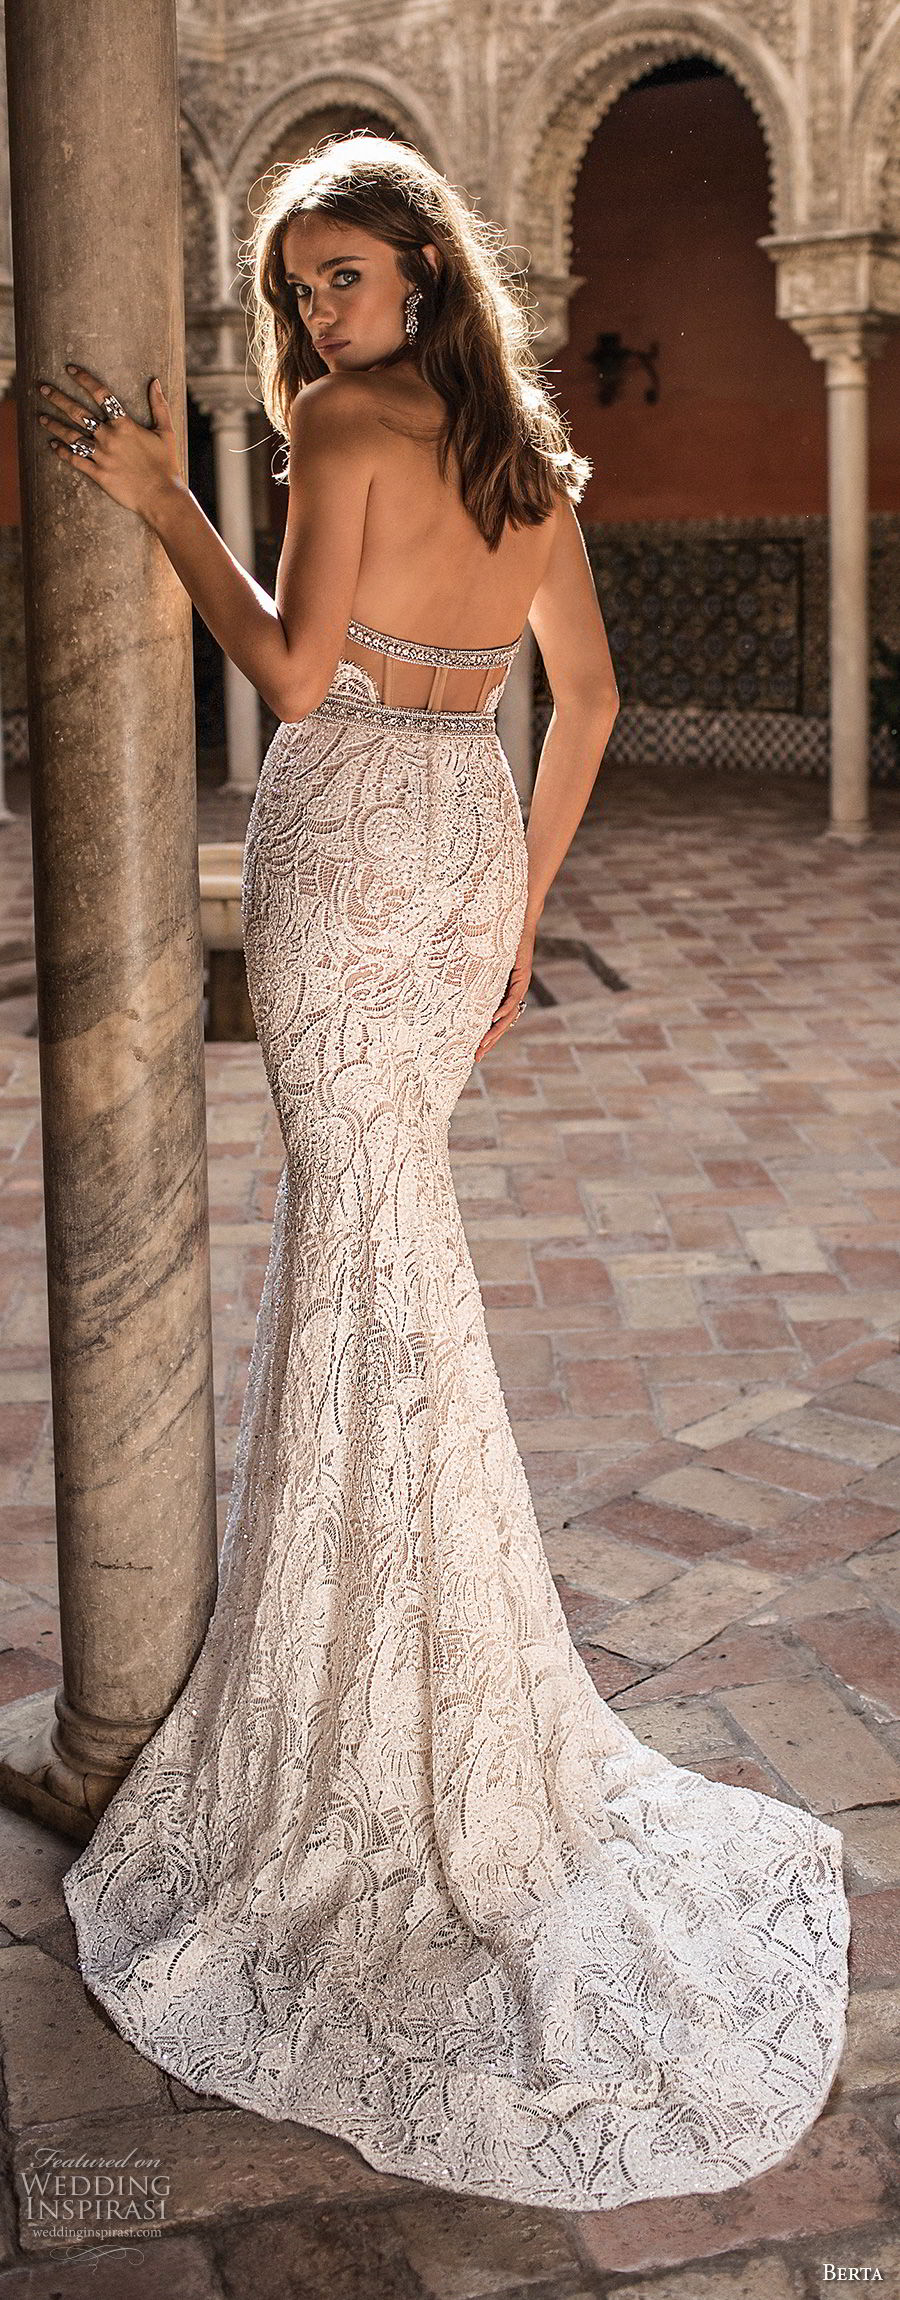 berta fall 2018 bridal strapless sweetheart neckline full embellishment elegant fit and flare sheath wedding dress open back sweep train (11) bv